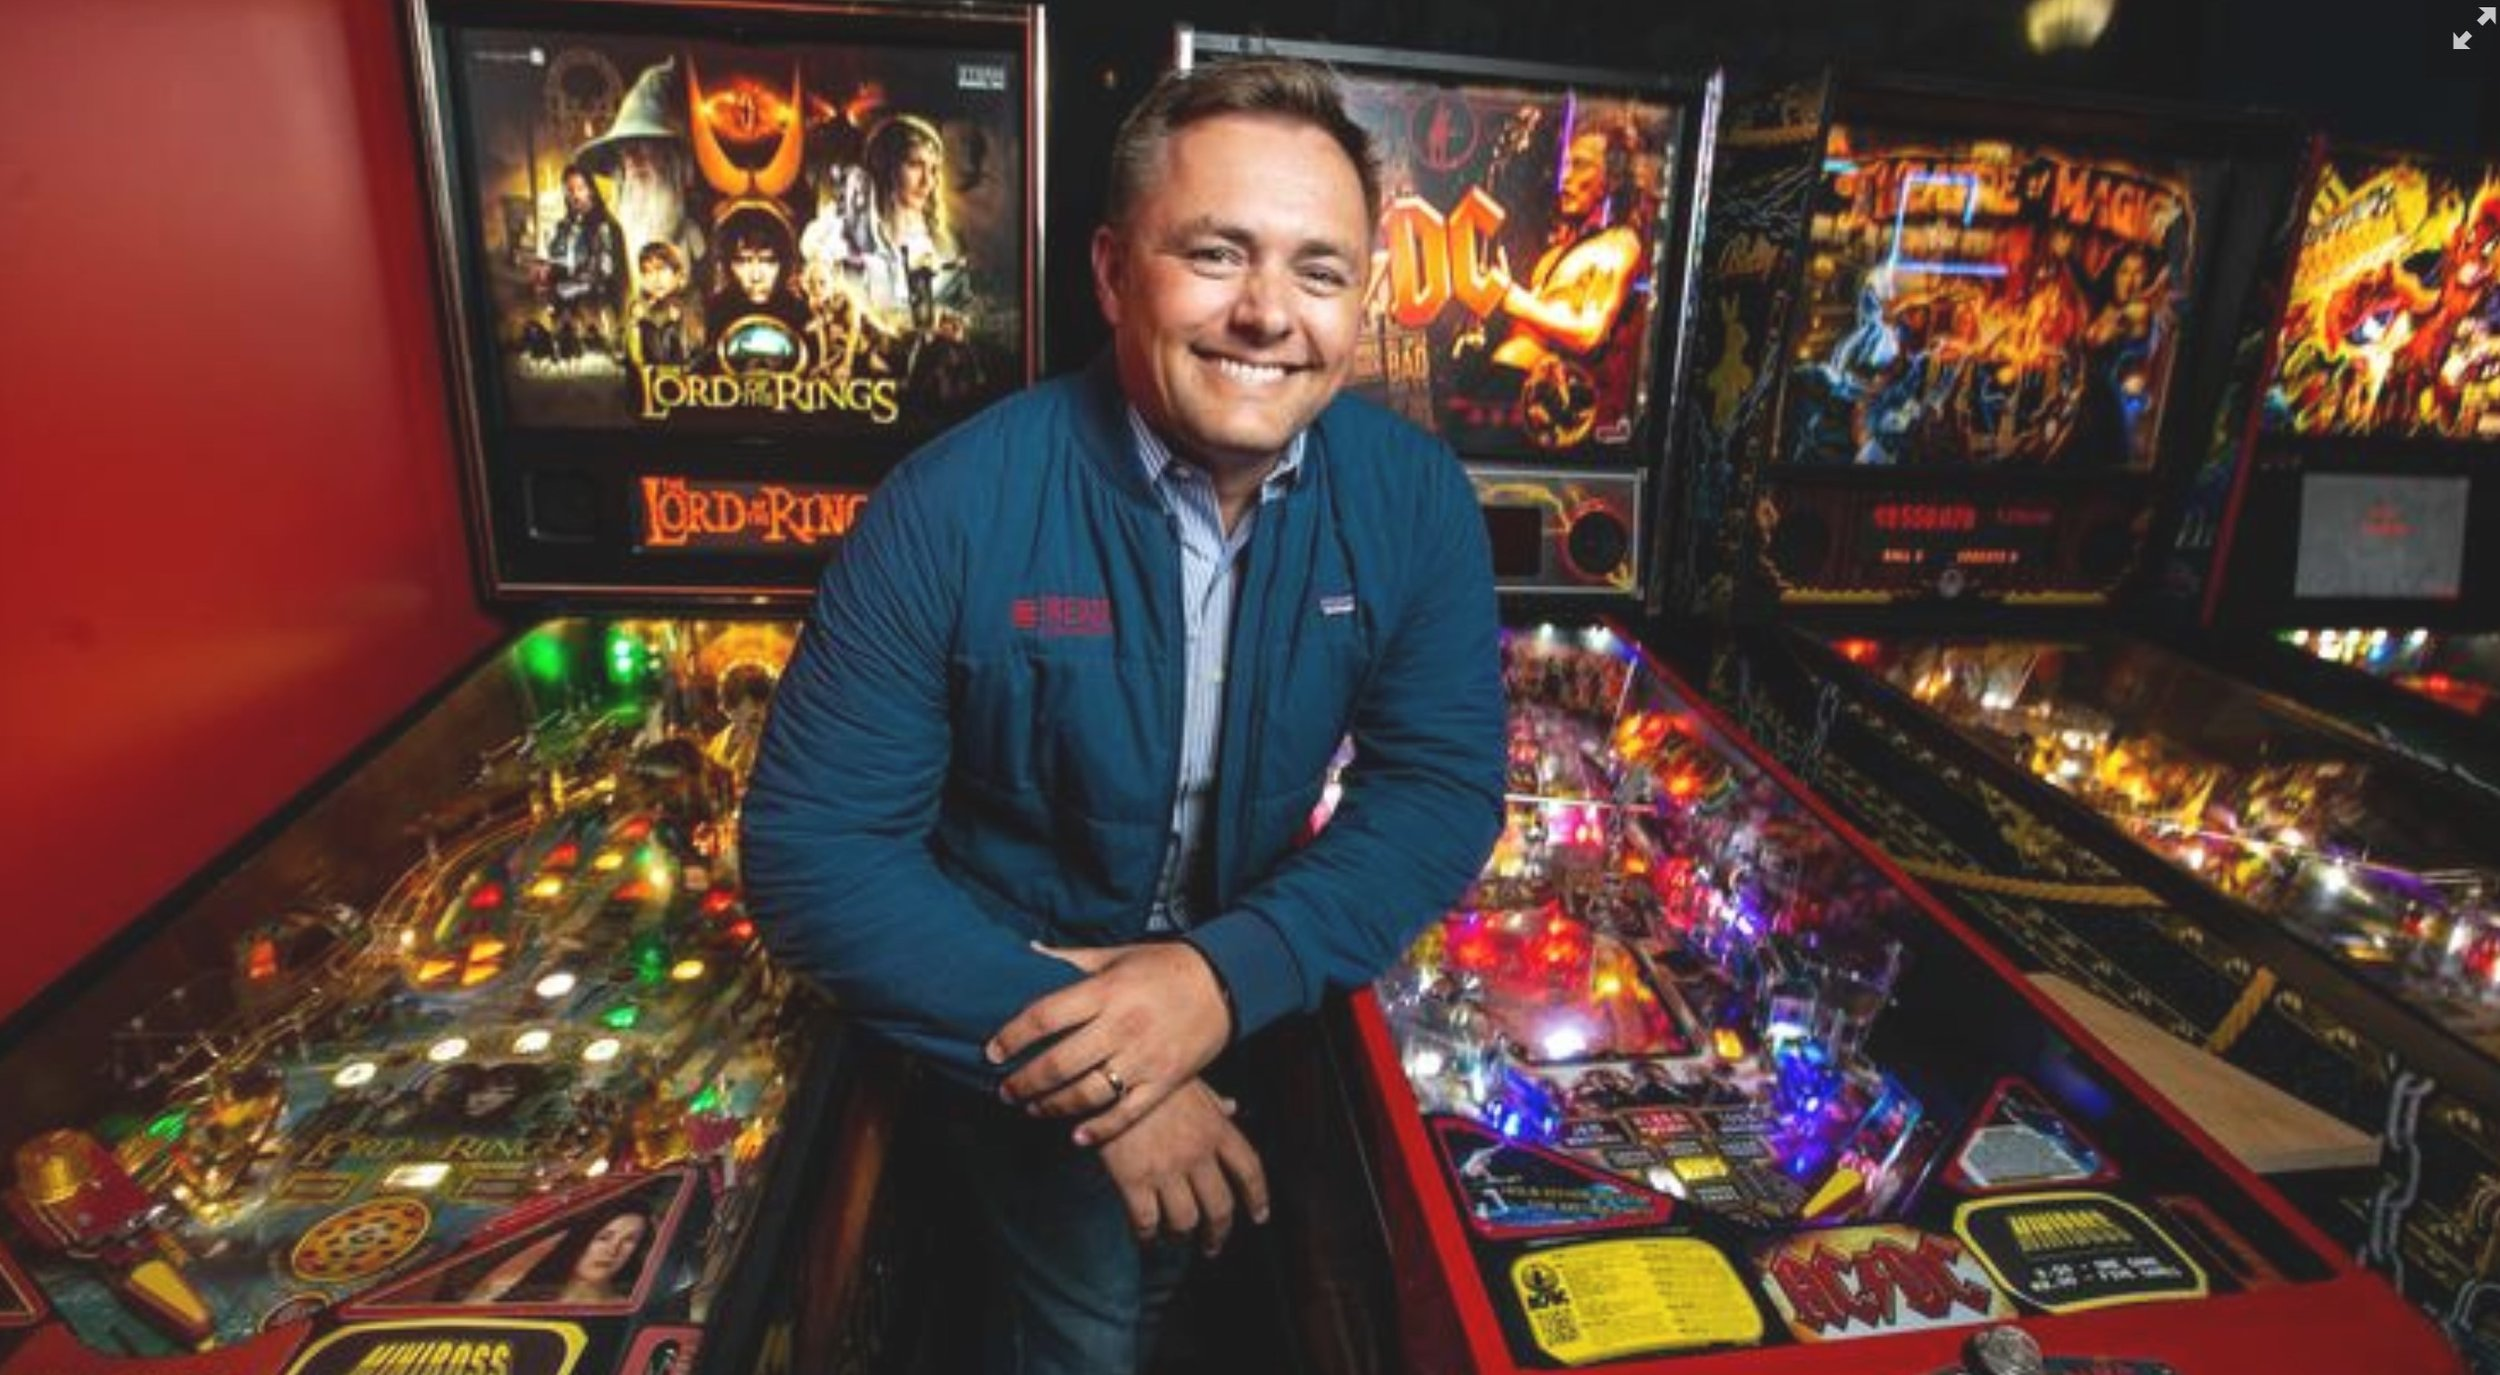 Jason Freise of REDCO Development, near the pinball machines at Miniboss arcade bar, which is located in a downtown San Jose property known as the Saratoga Capital Building.